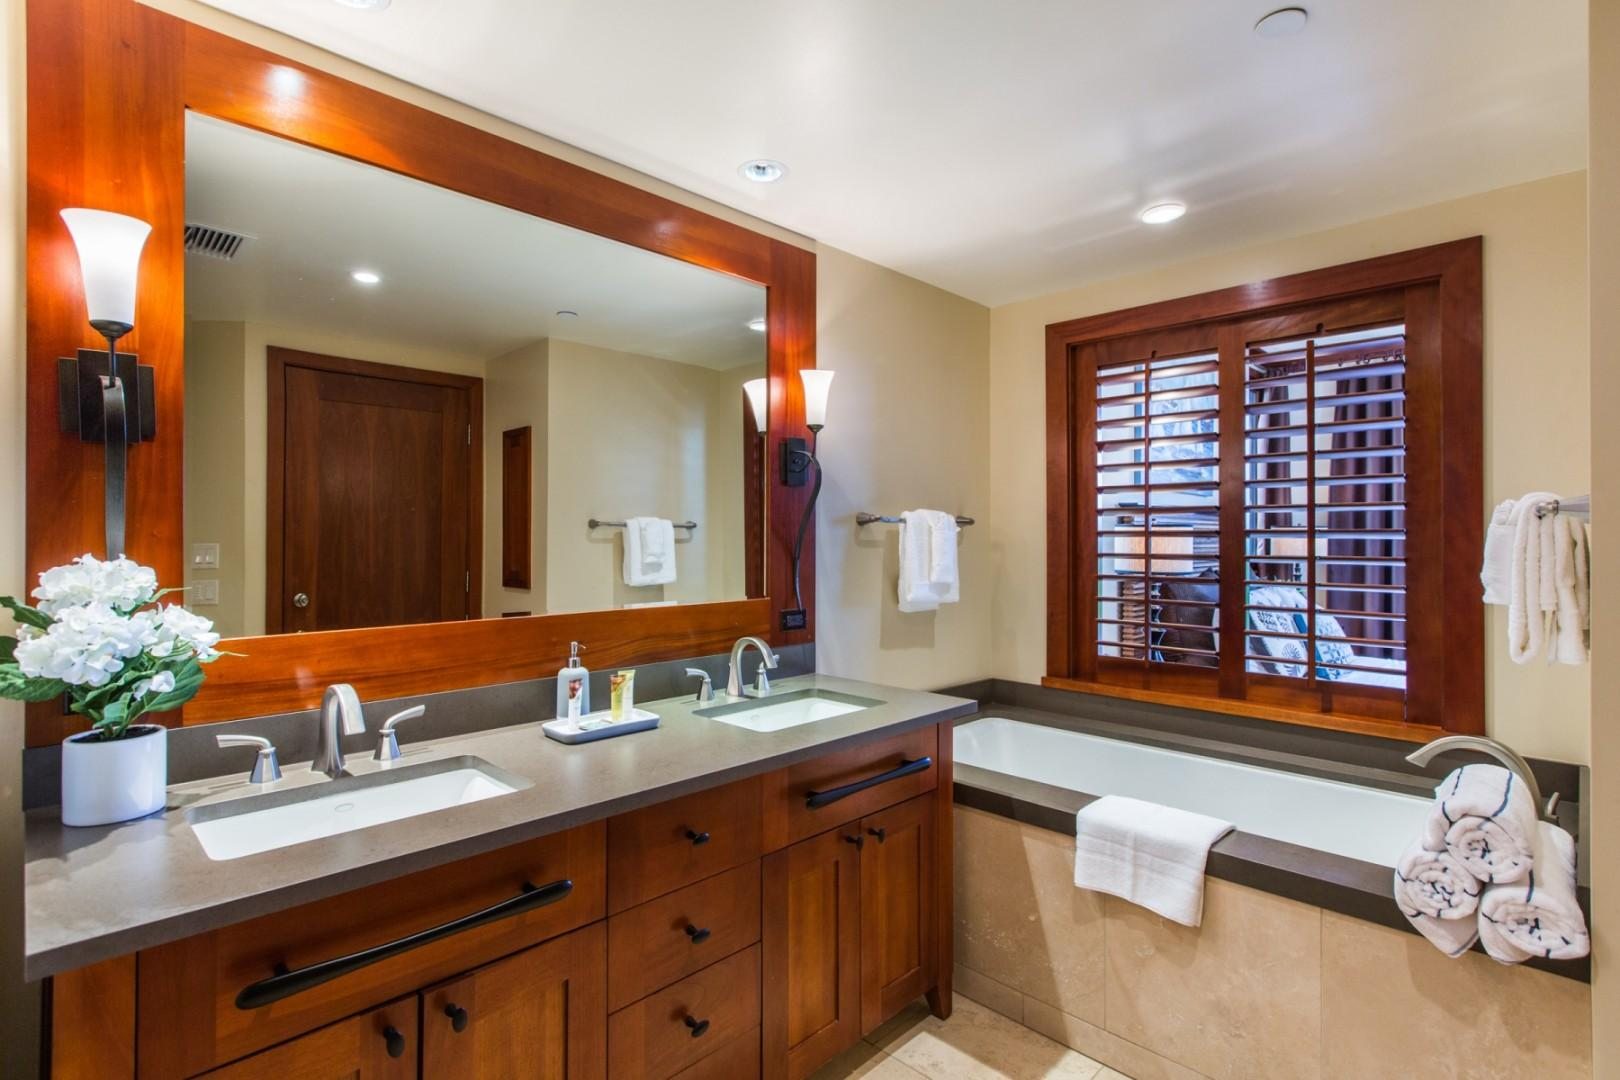 The master bathroom includes double sinks, deep soaking tub and separate shower